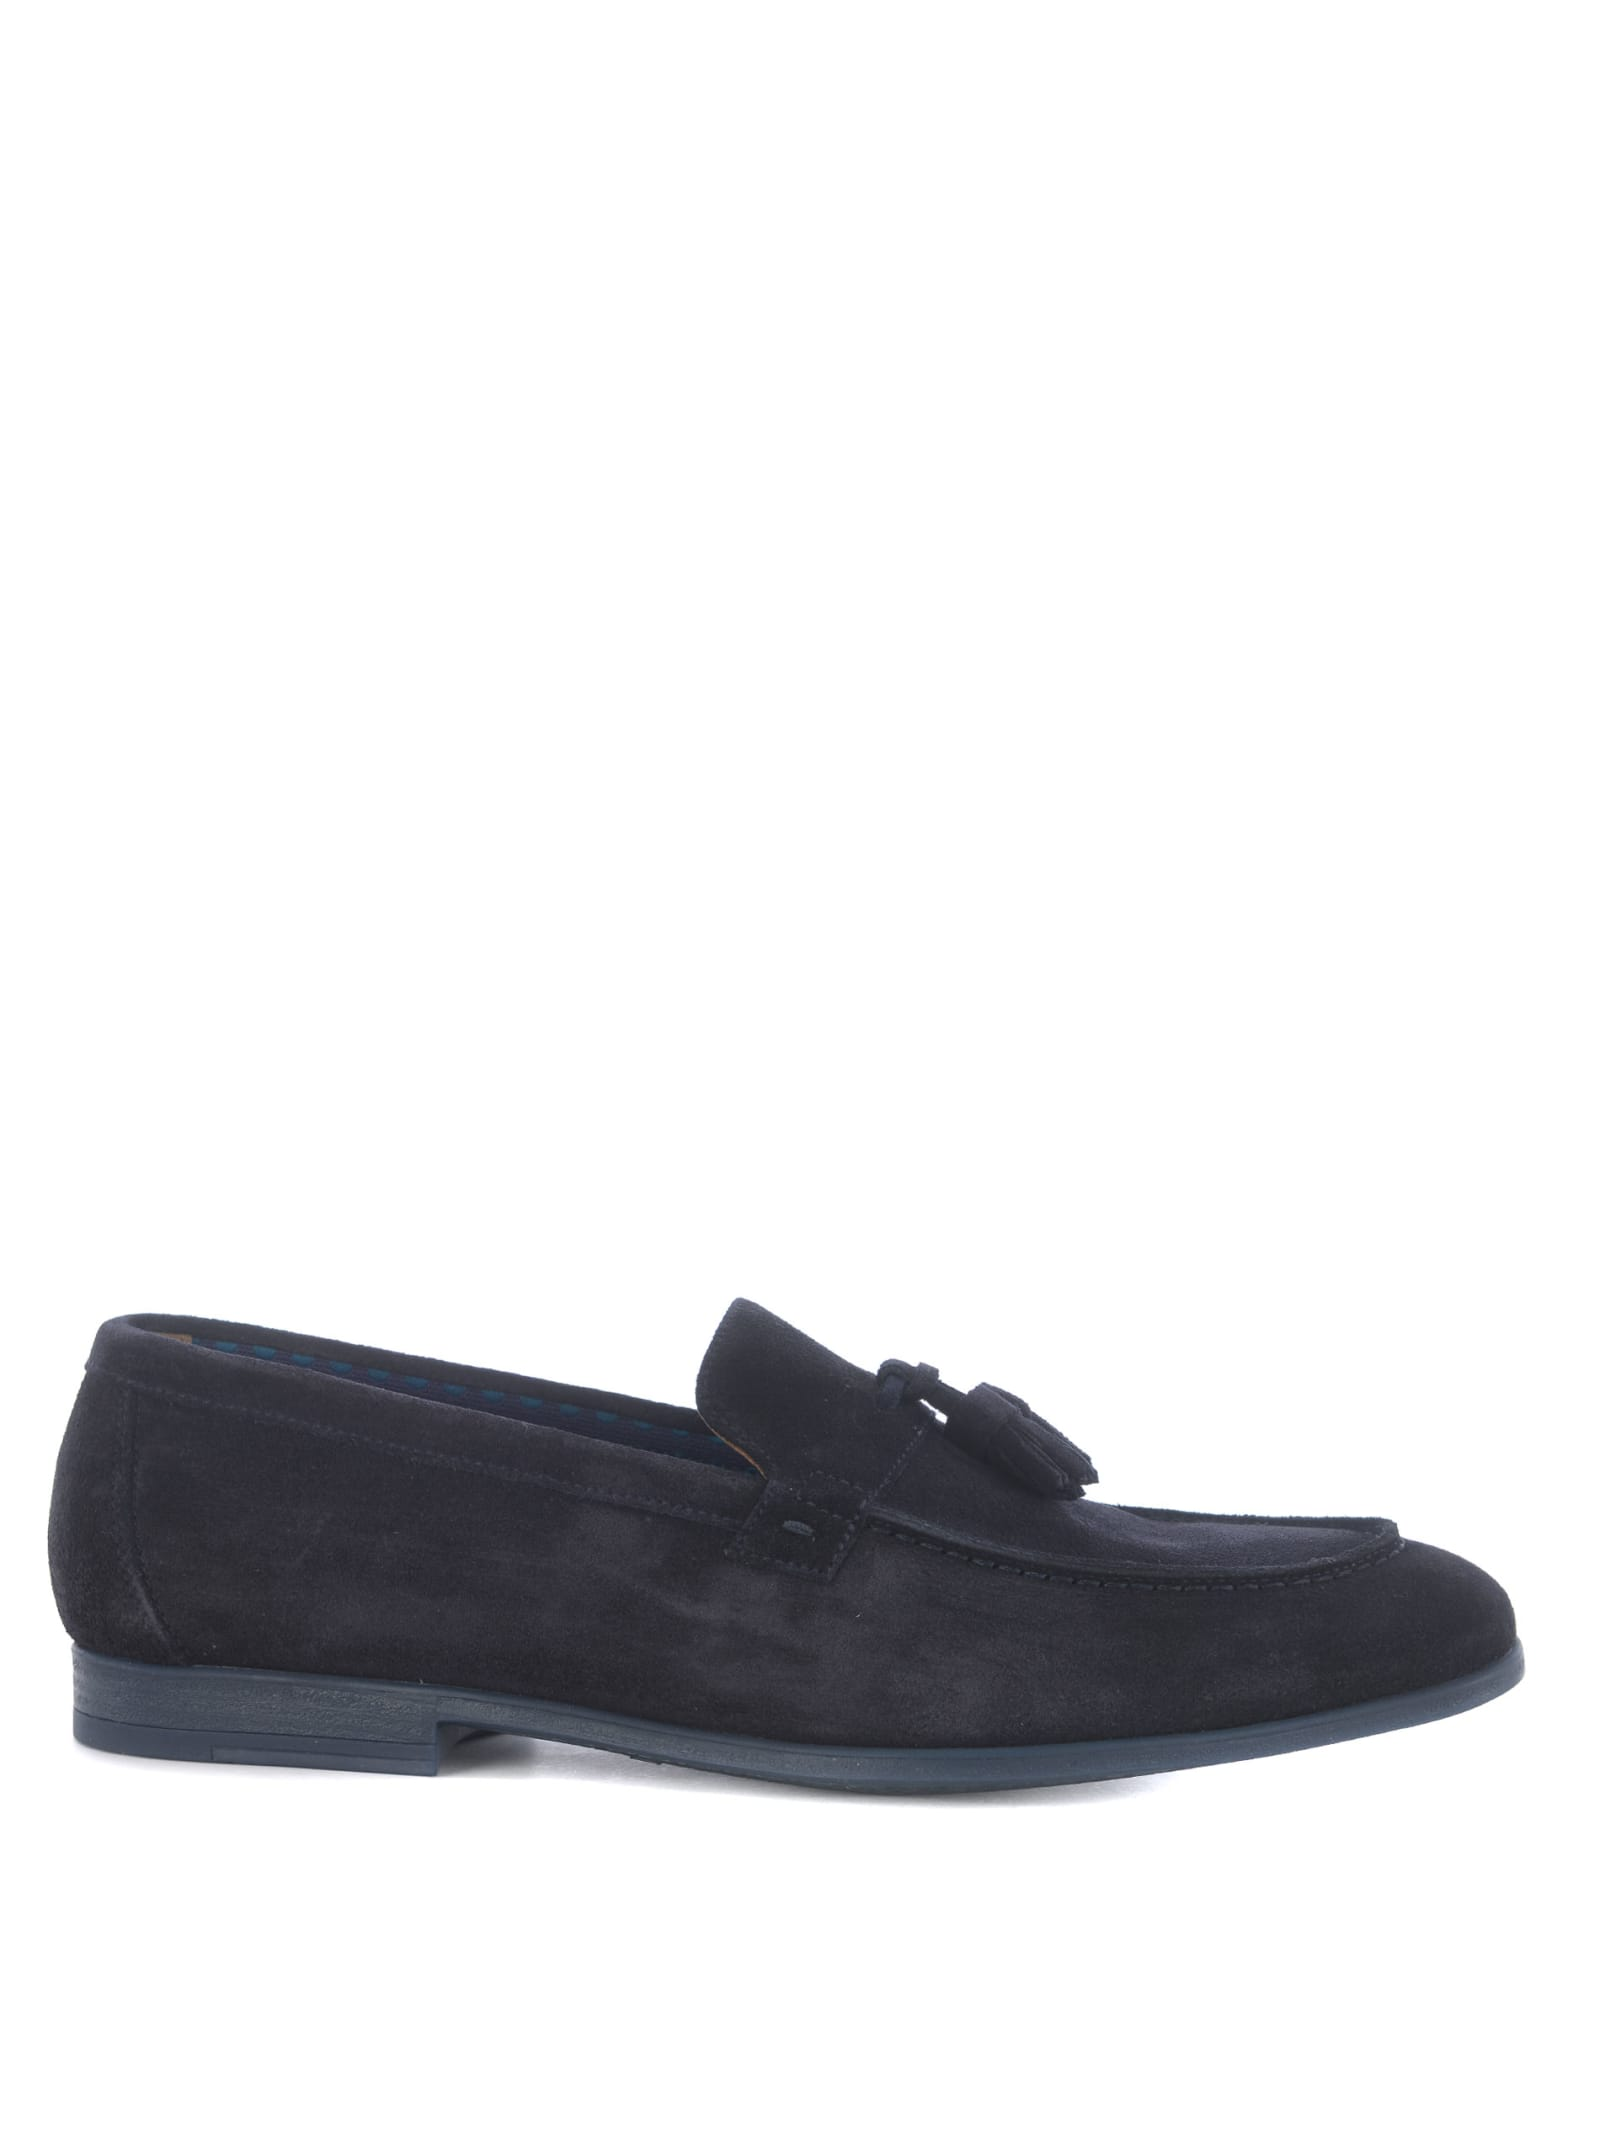 Doucals Loafers